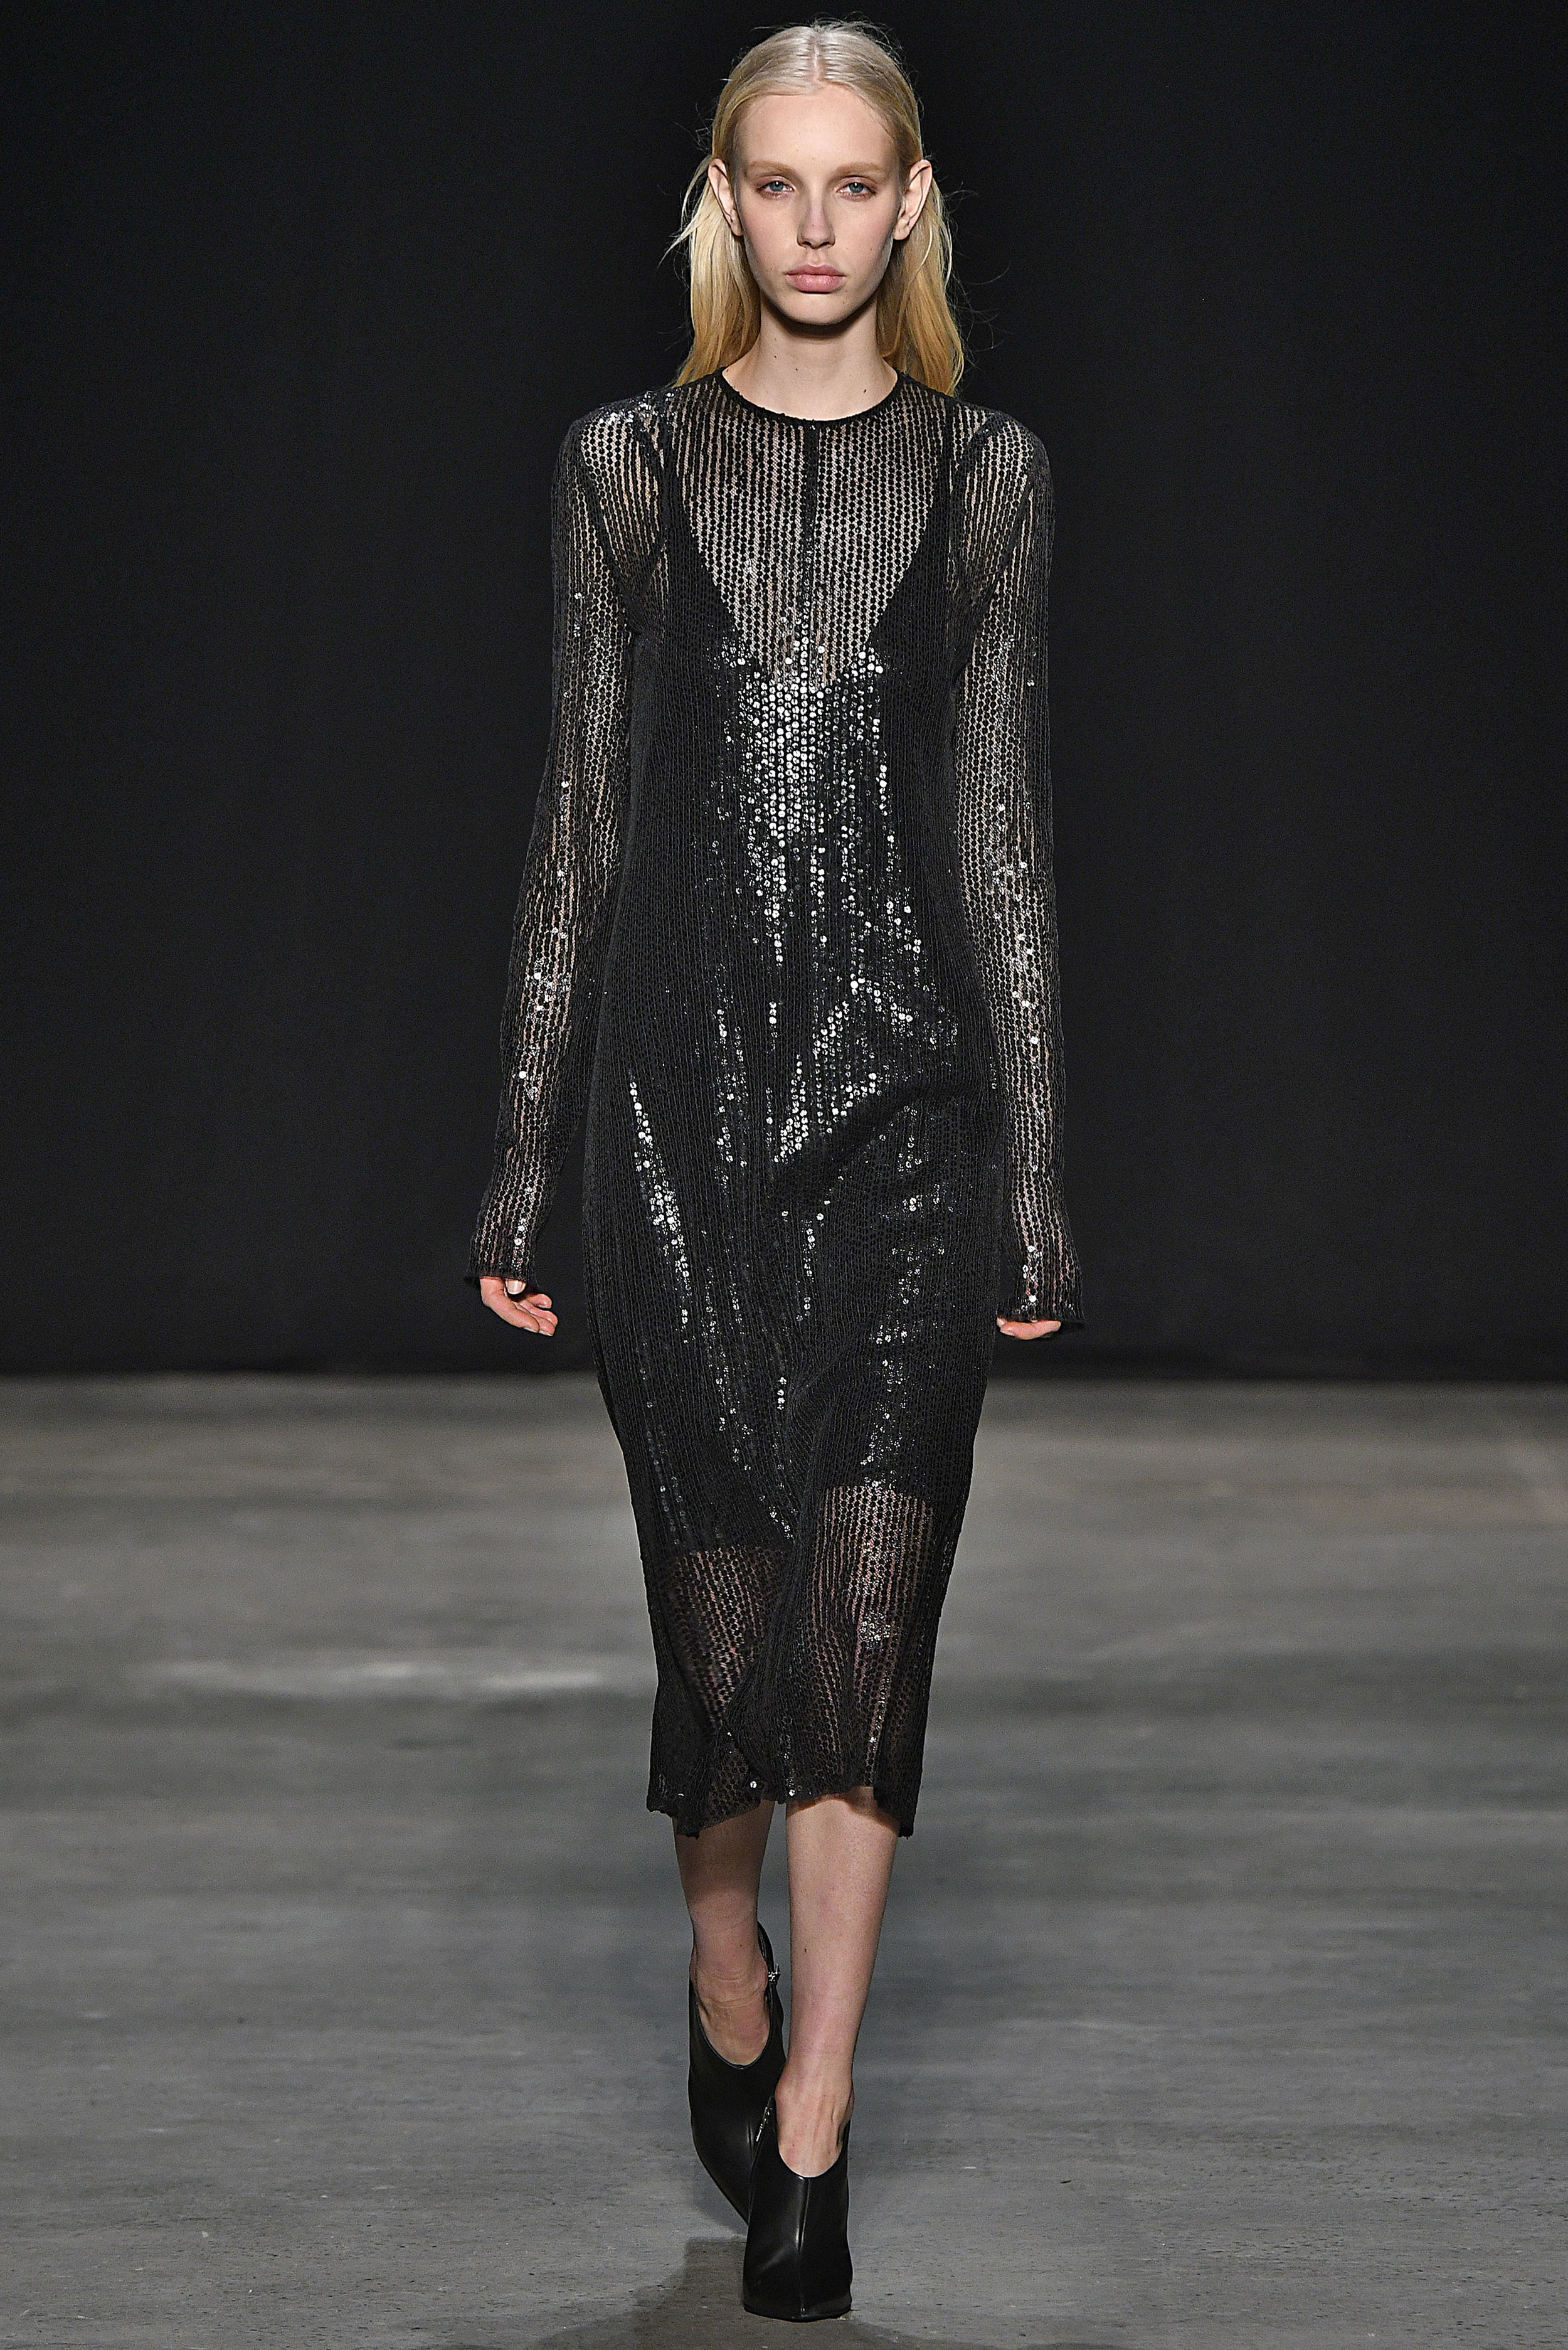 Narciso Rodriguez Fall 2017 collection. Black hammered paillette dress.